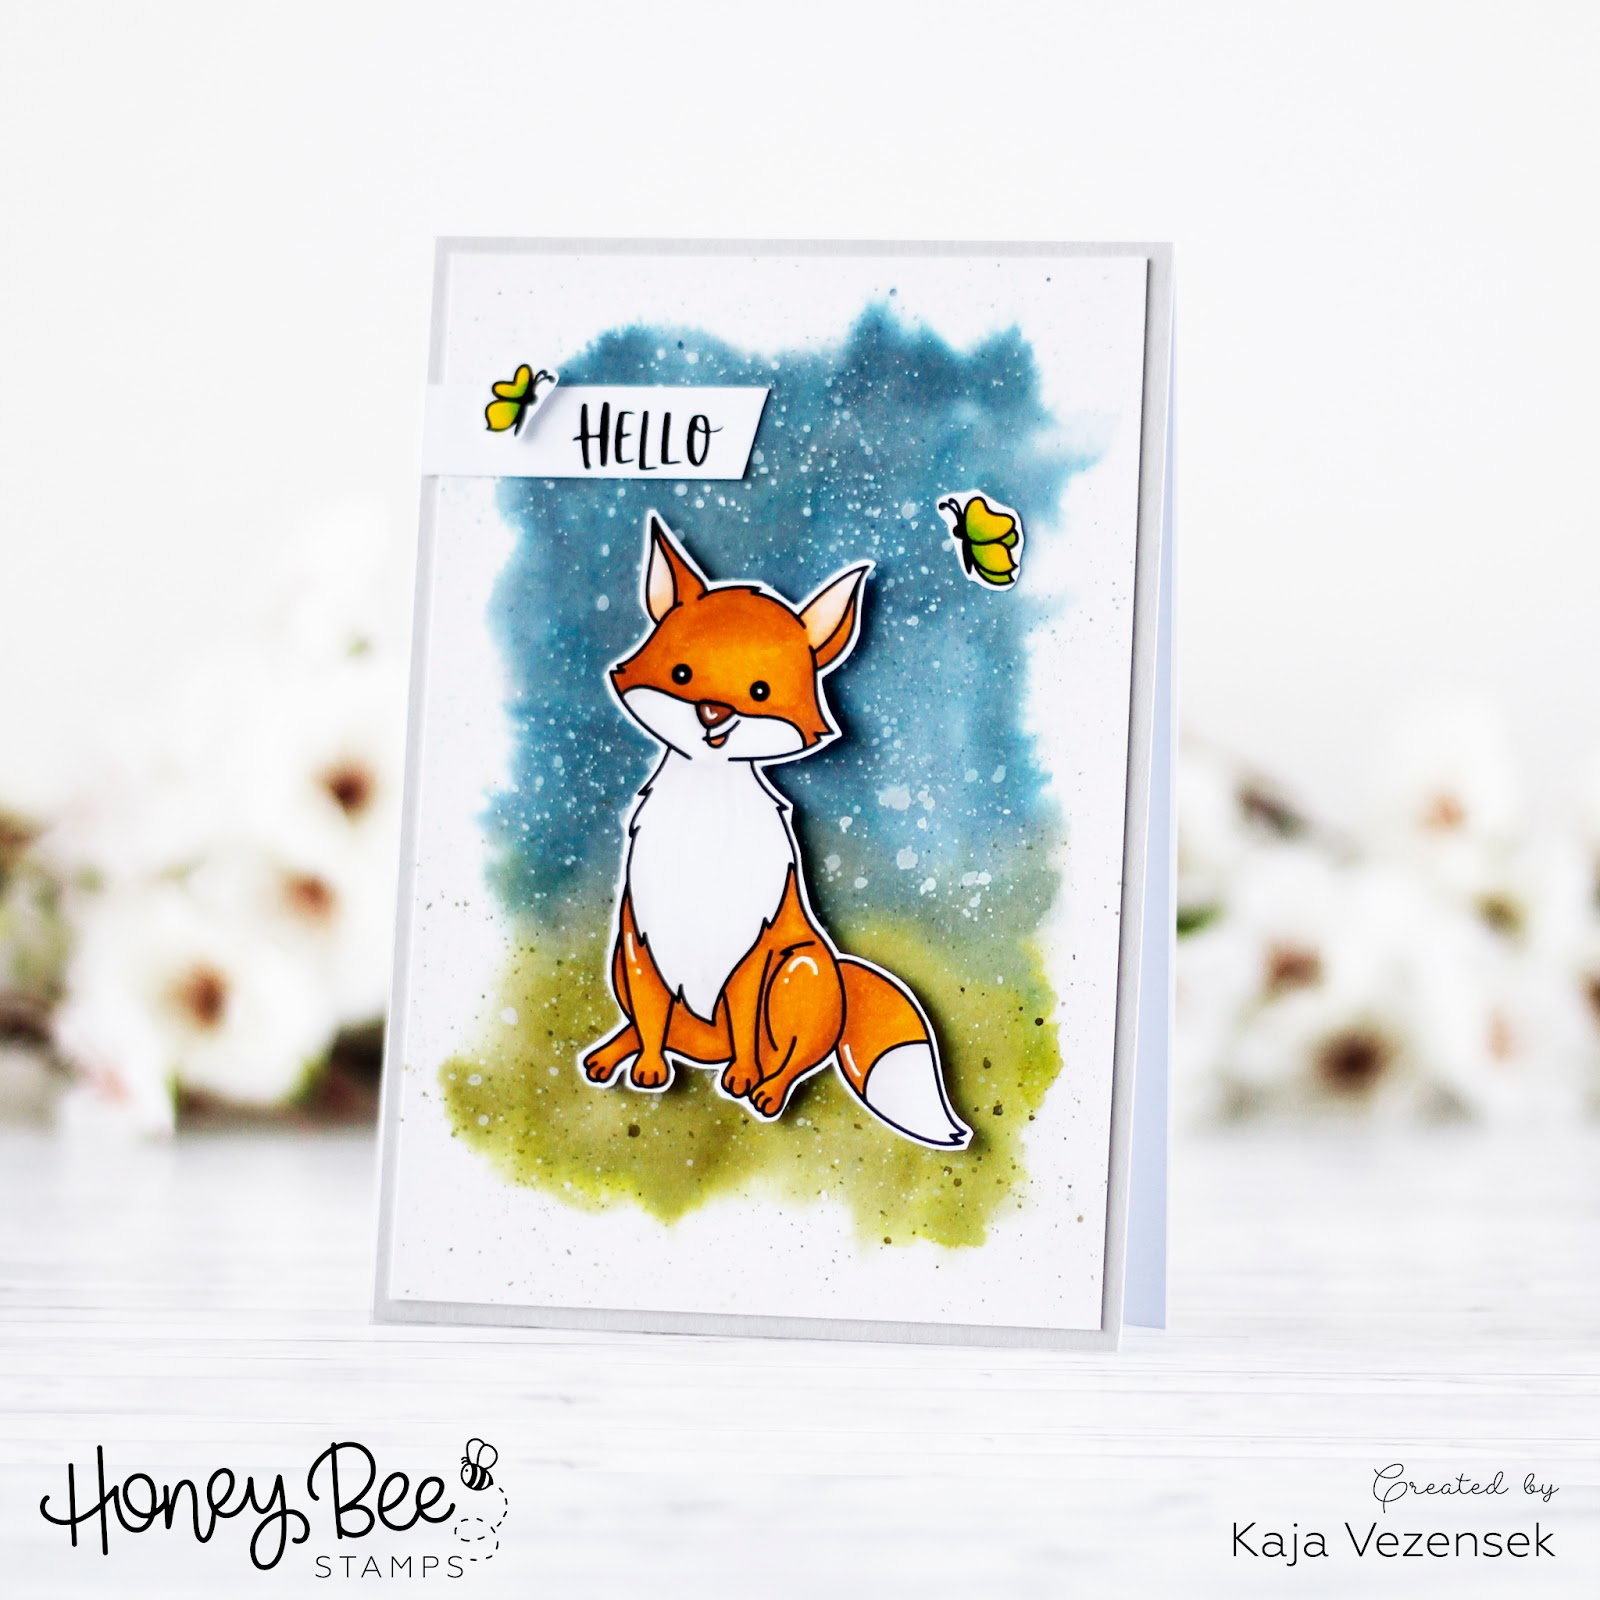 New release sneak peek | HONEY BEE